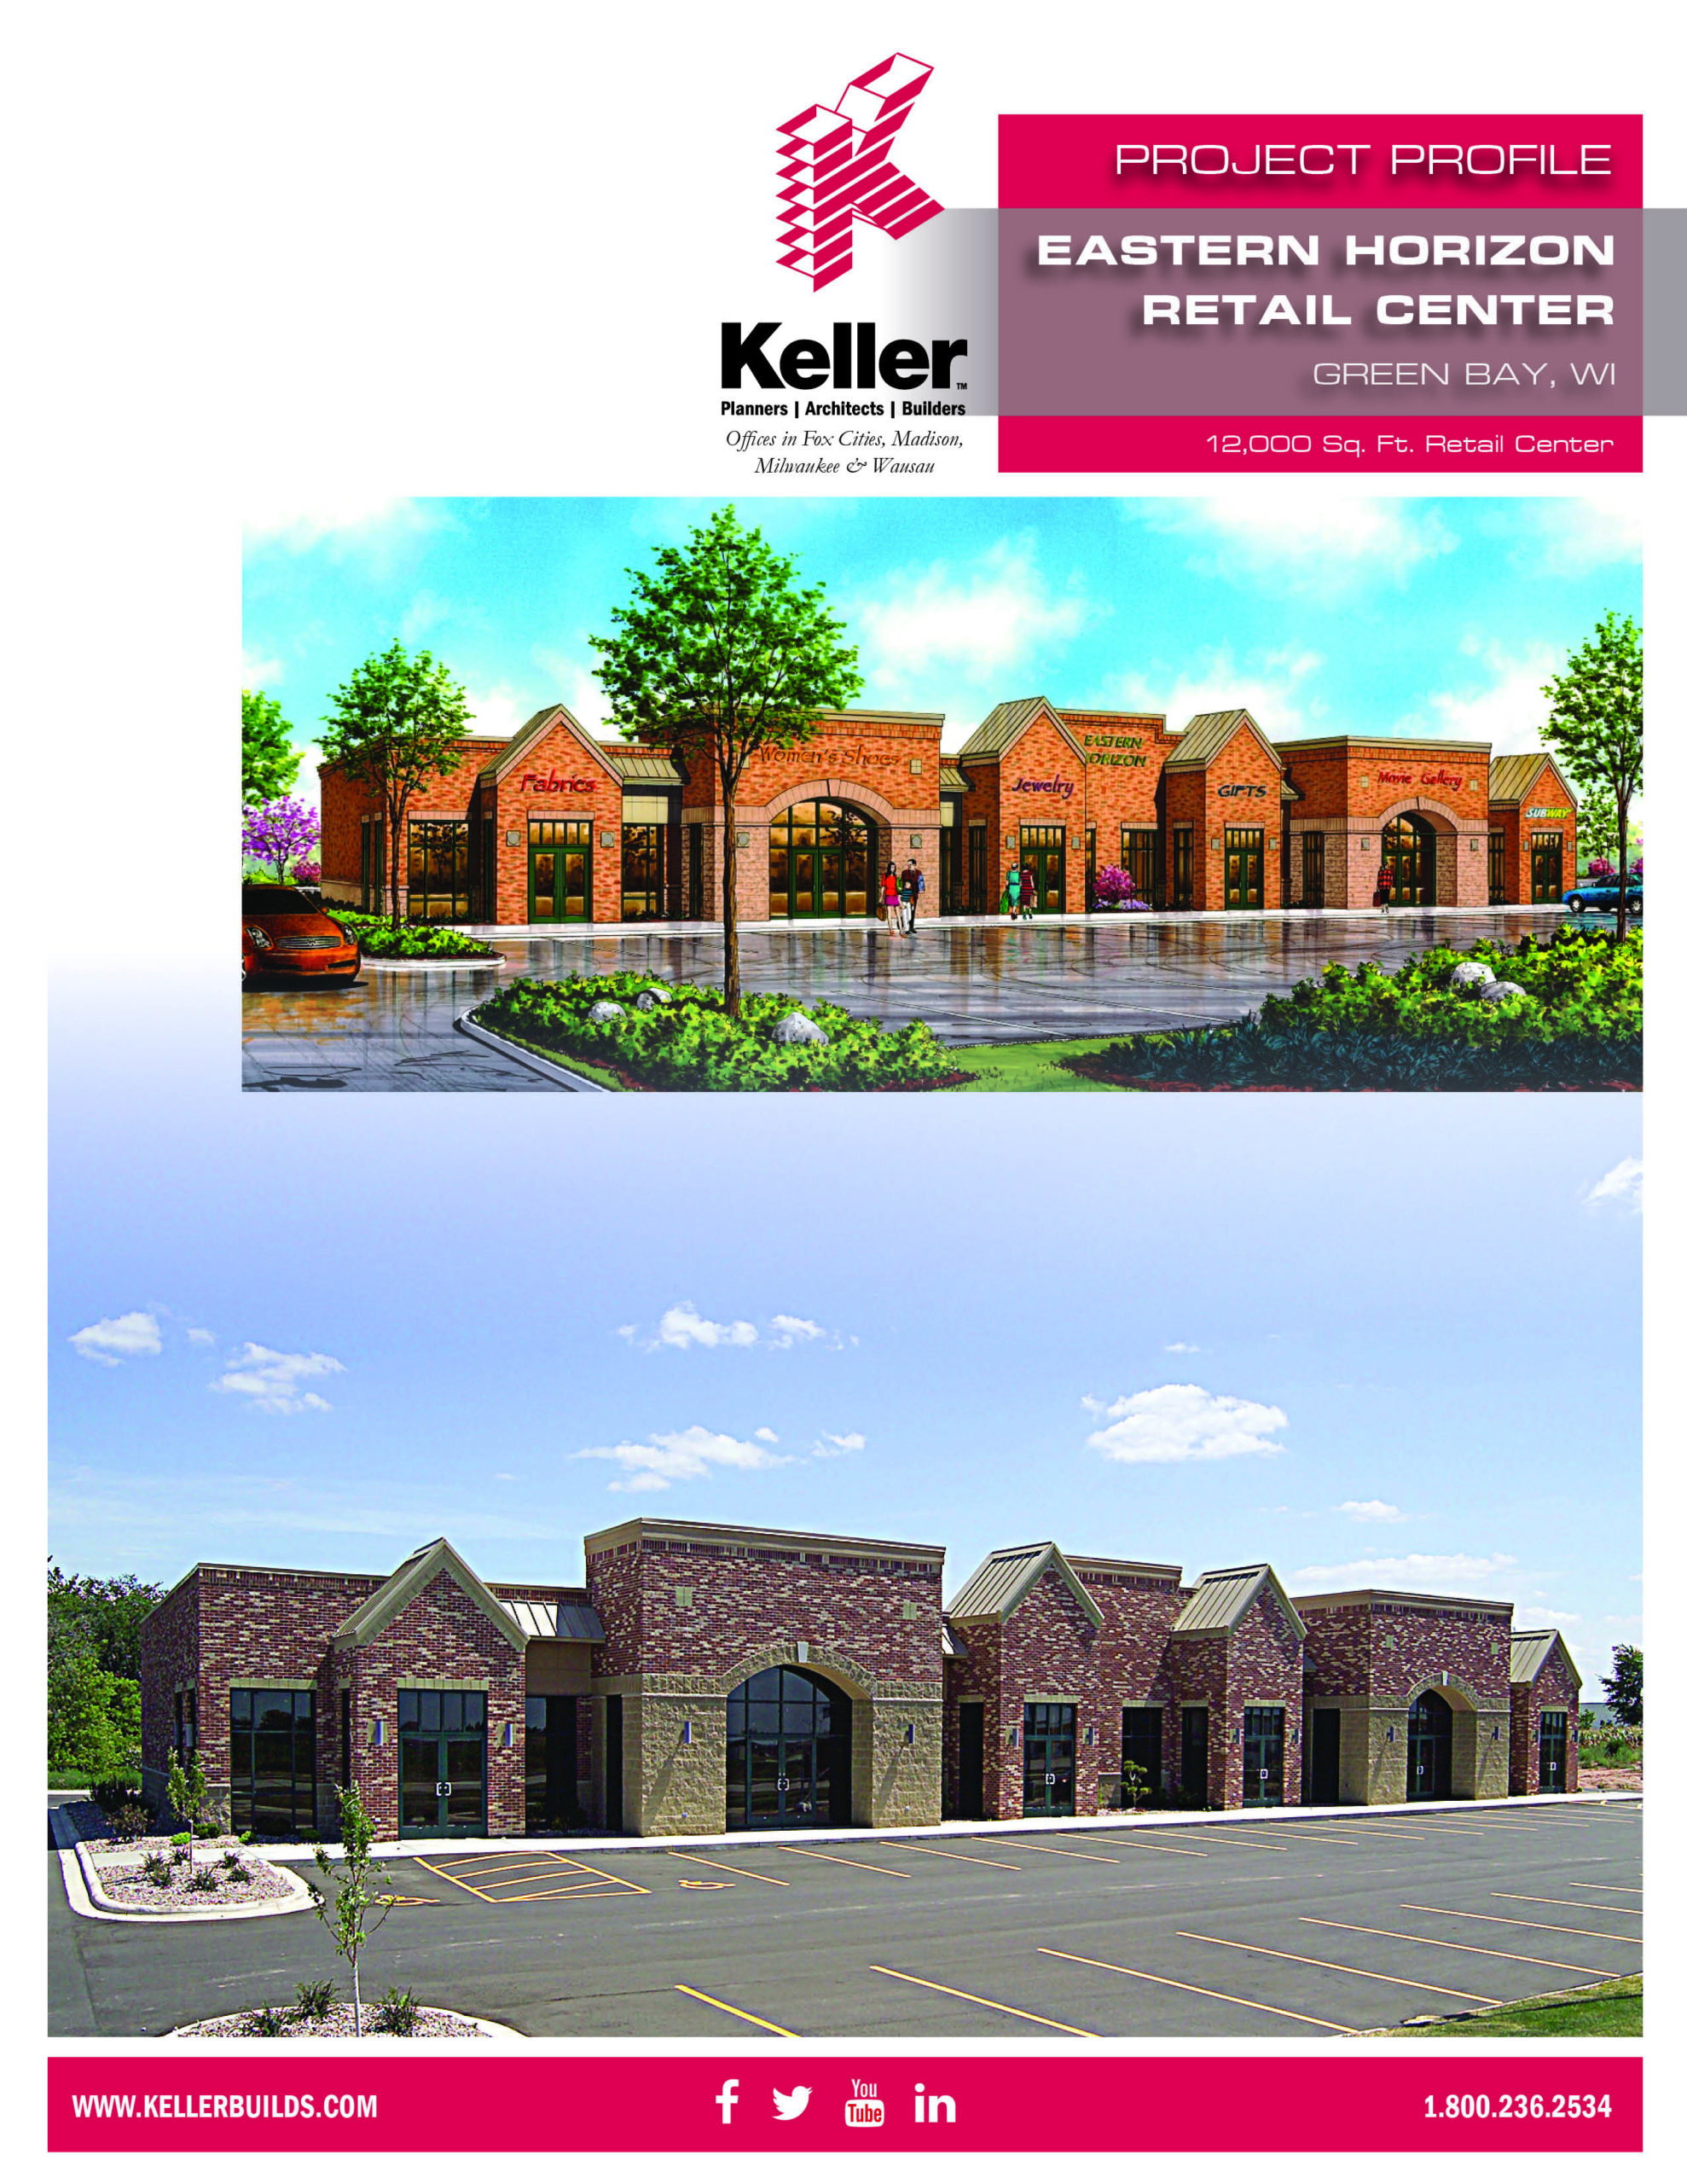 EASTERN HORIZON RETAIL CENTER